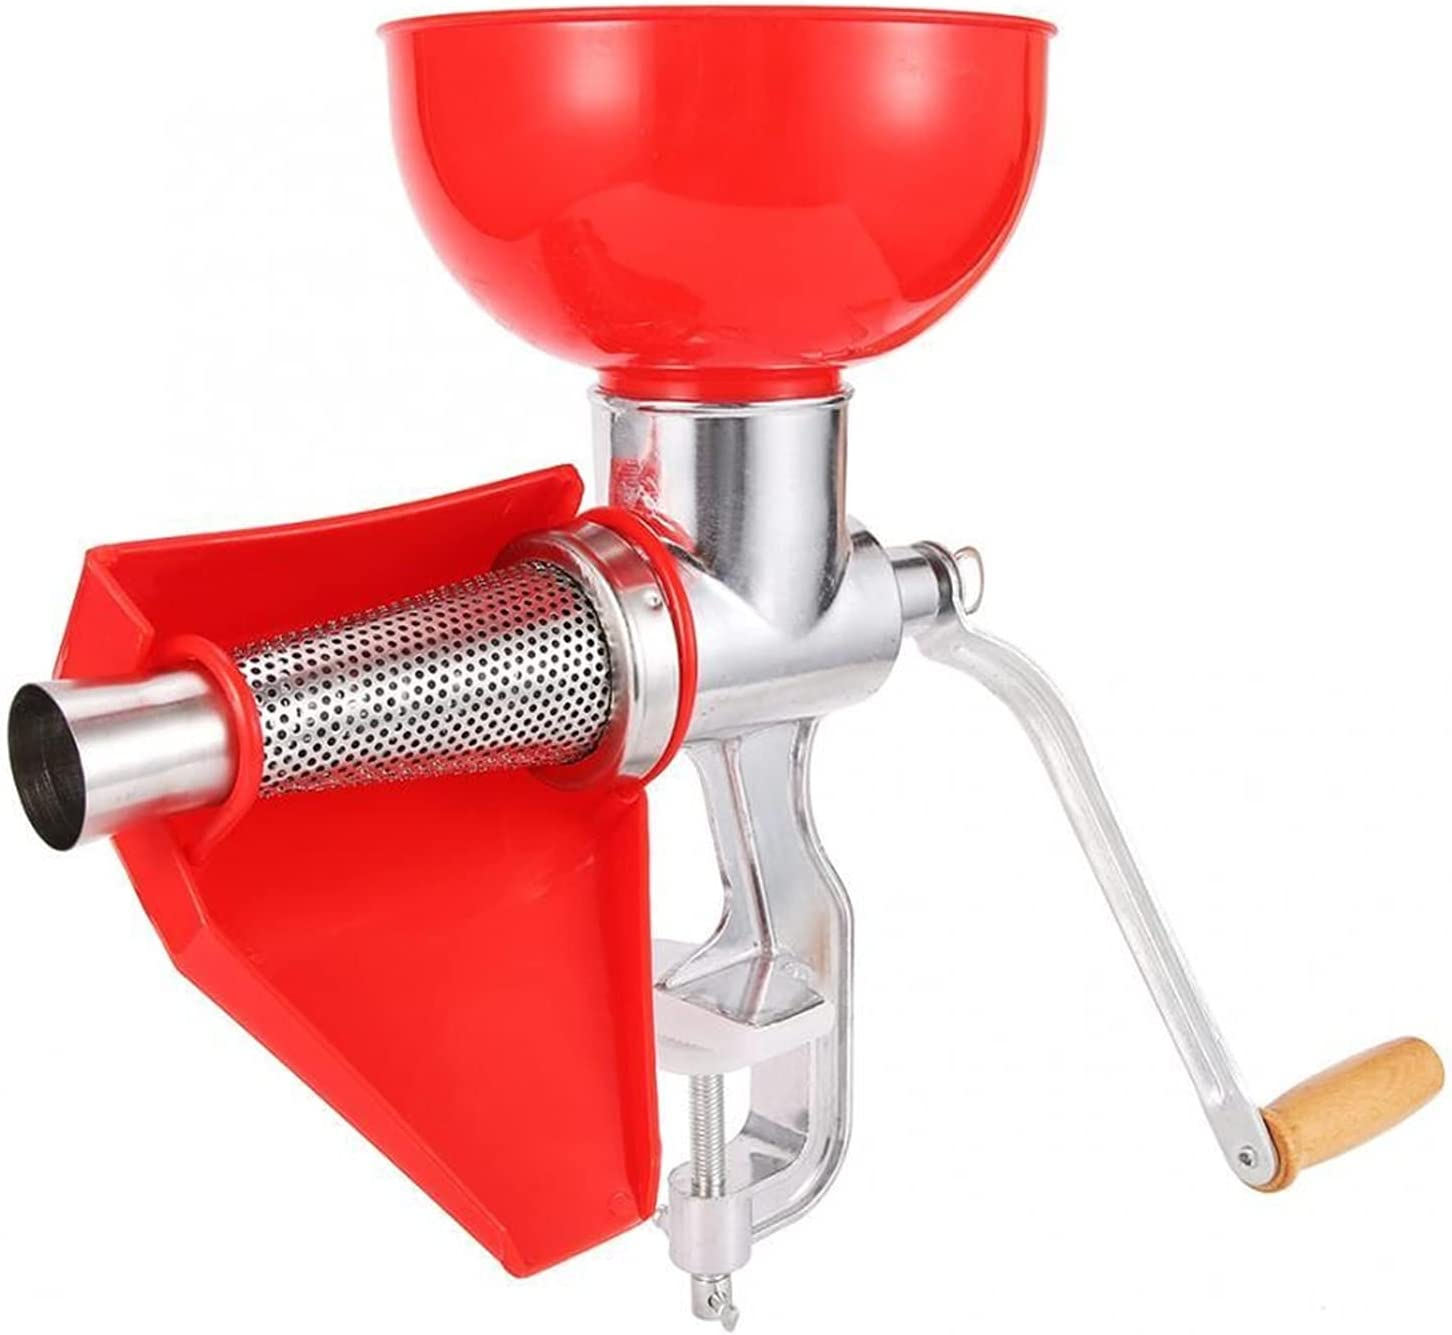 ZSL Portable Fruit Juicer Manual Tool Pressure Lemon Tomato Hand Los Angeles Mall New products, world's highest quality popular!